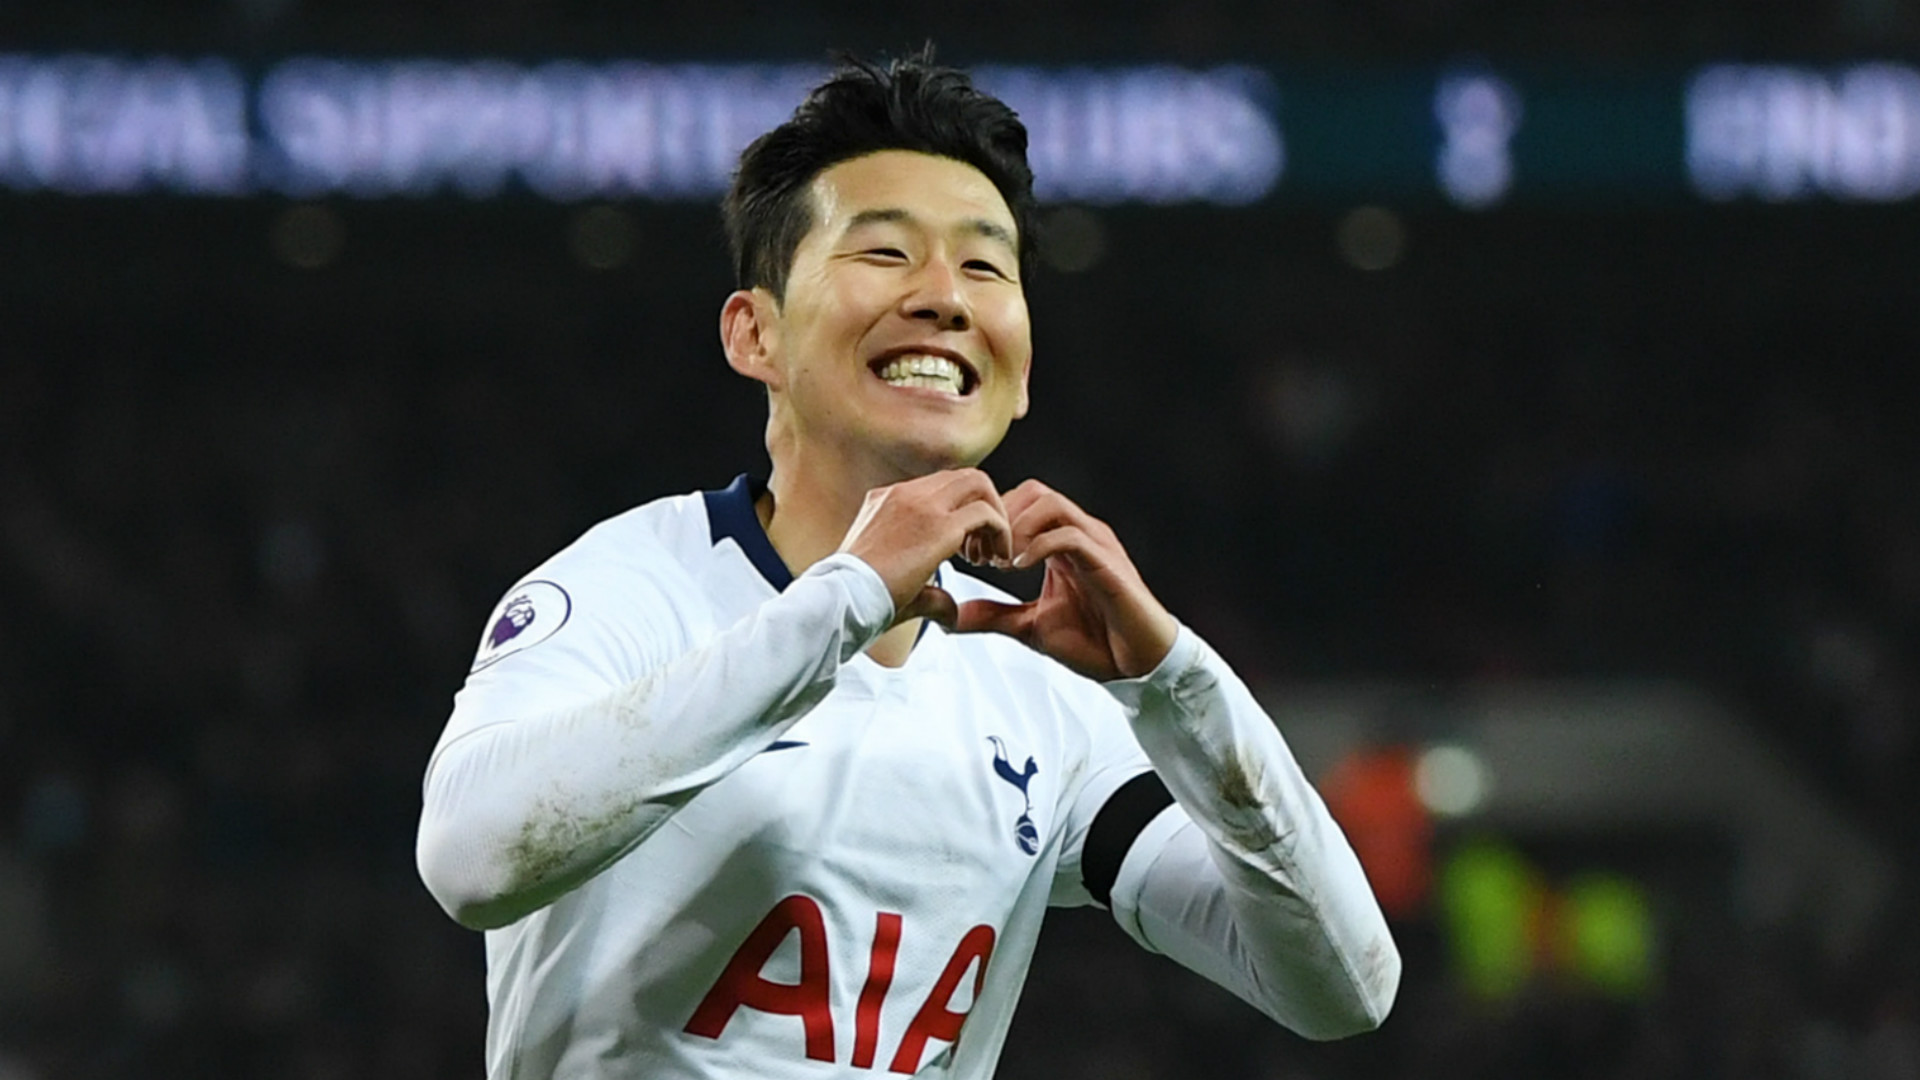 Son  Heung-Min tattoo, the Korean number 7 from Chuncheon, South Korea